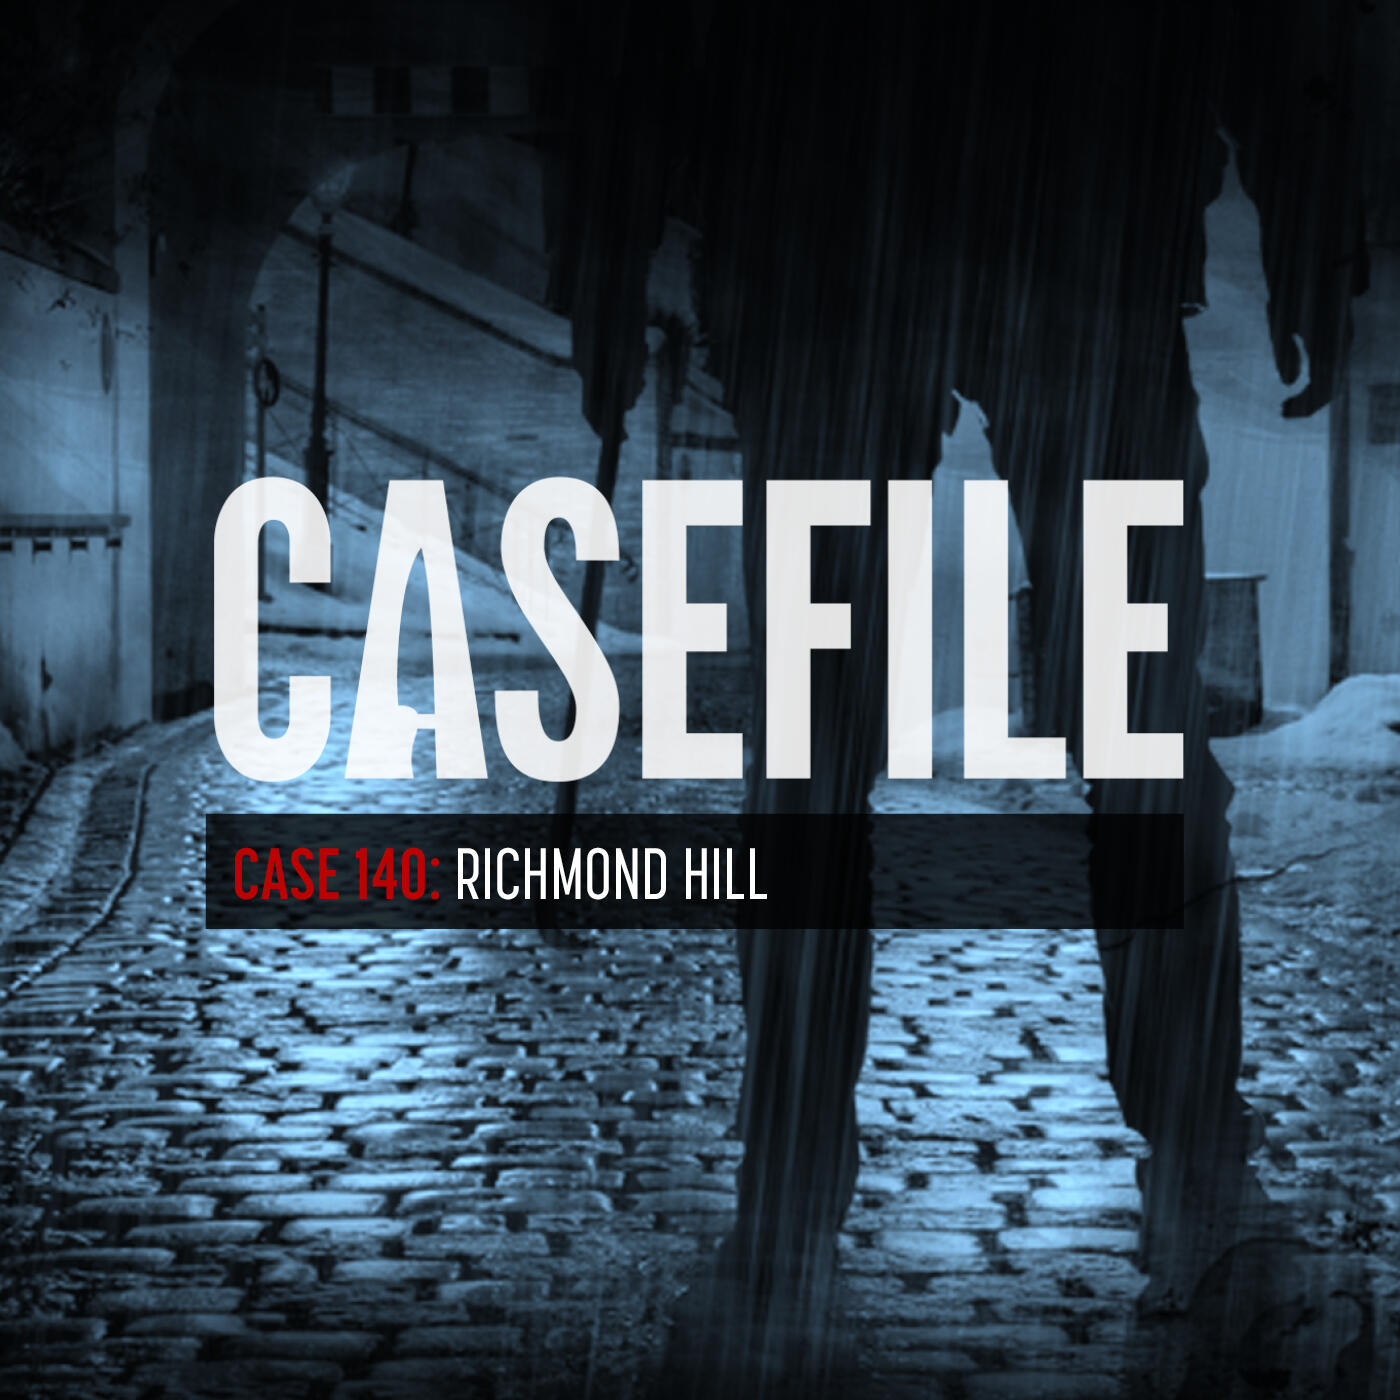 Case 140: Richmond Hill